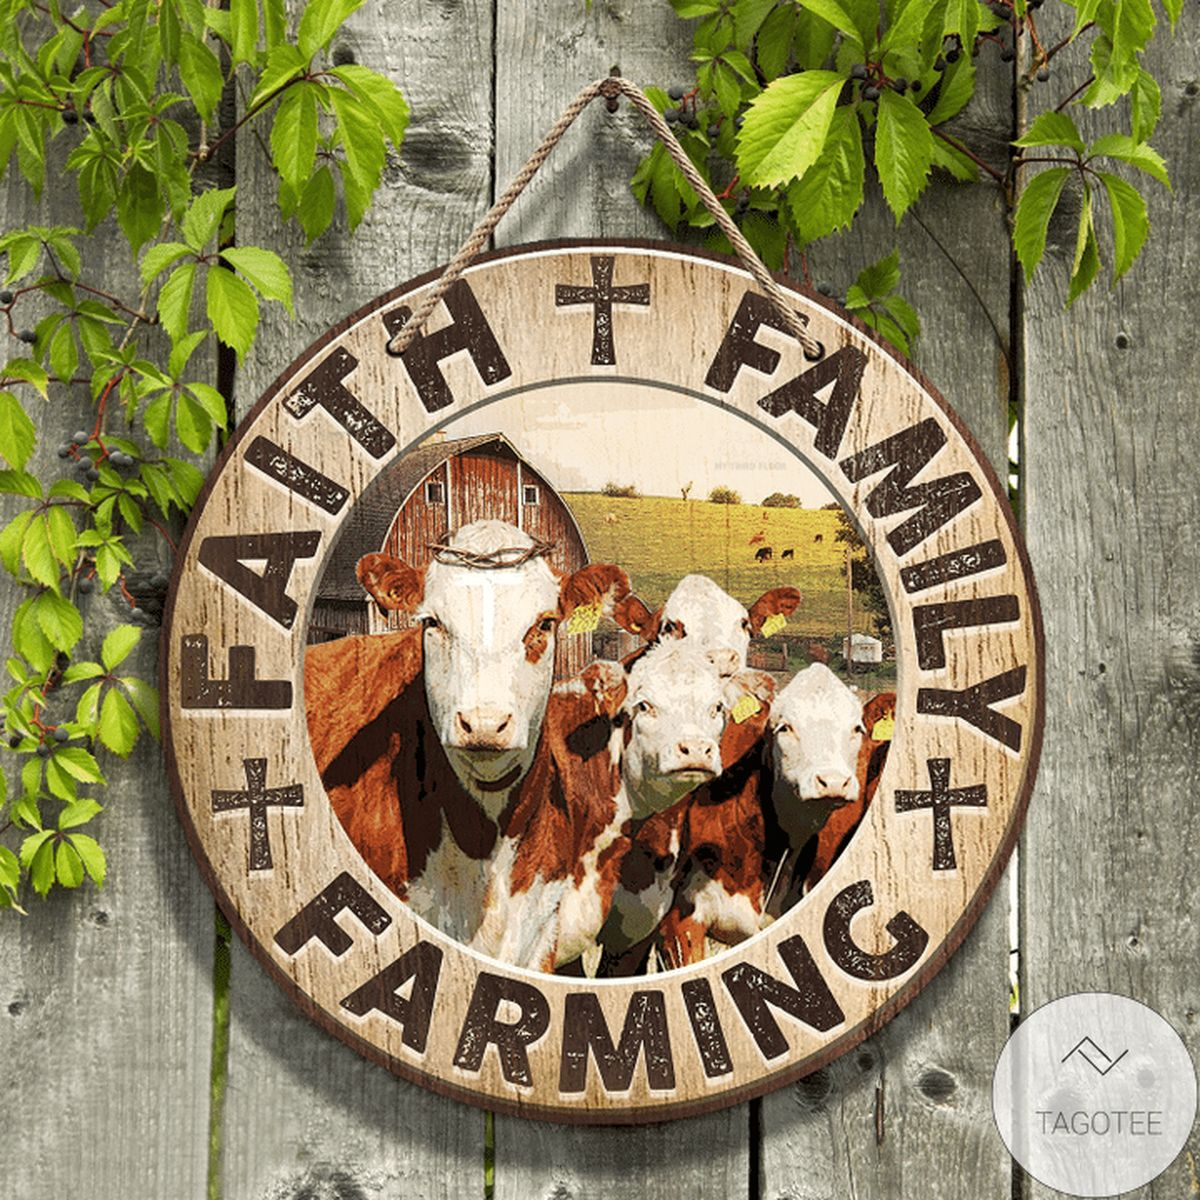 Hereford Cattle Faith Family Farming Round Wooden Sign